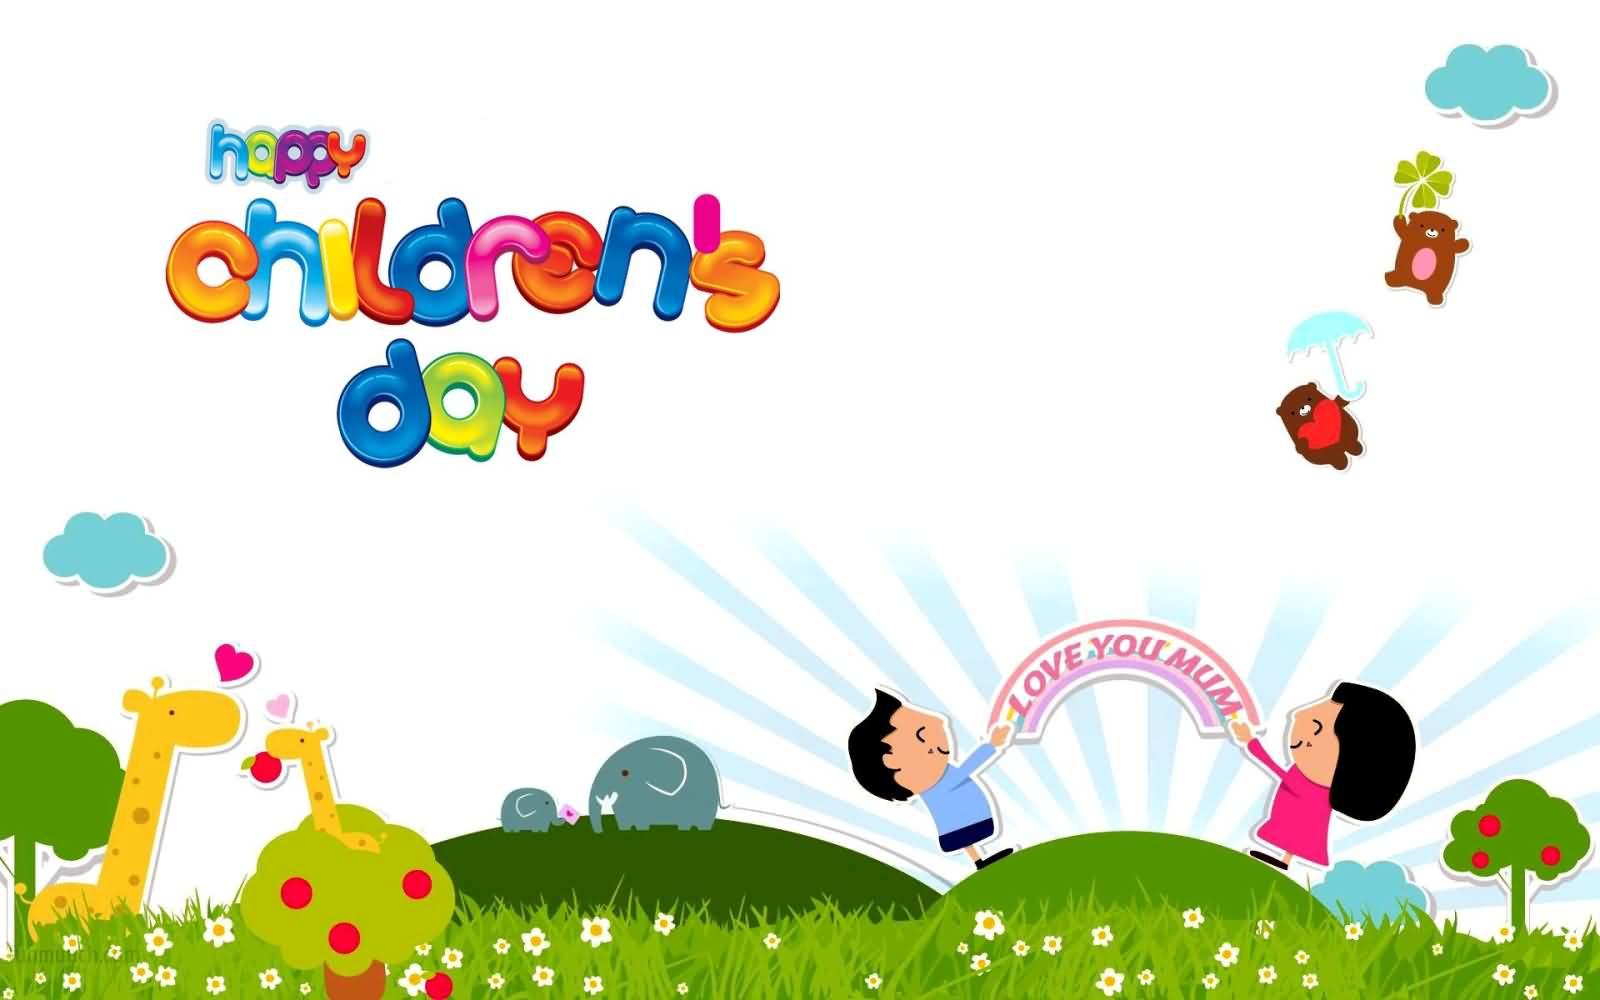 Happy Childrens Day Colourful Wallpaper